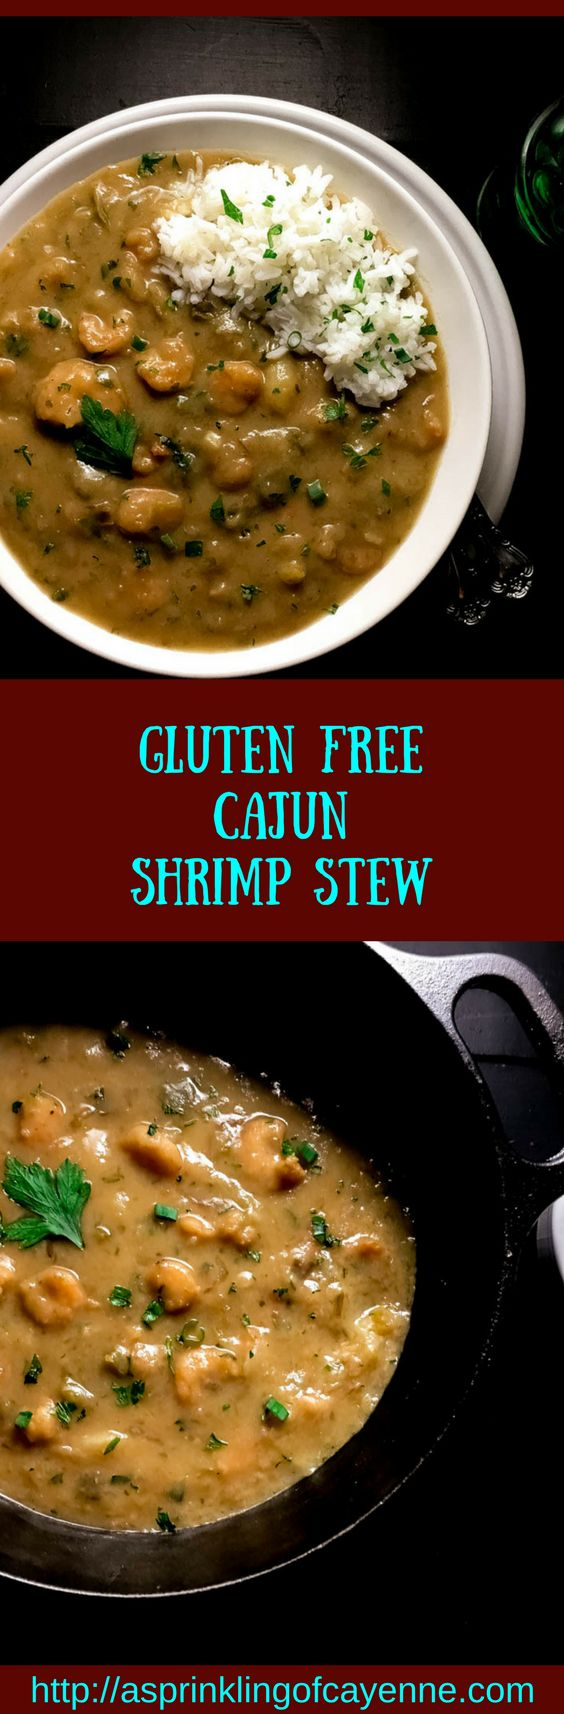 Gluten Free Cajun Shrimp Stew. Authentic taste and texture my Trinity Roux™. Classic south Louisiana comfort food recipe is Paleo and grain free without rice. Yum-delicious comfort food for family is also oh sooo  company-worthy.   http://asprinklingofcayenne.com